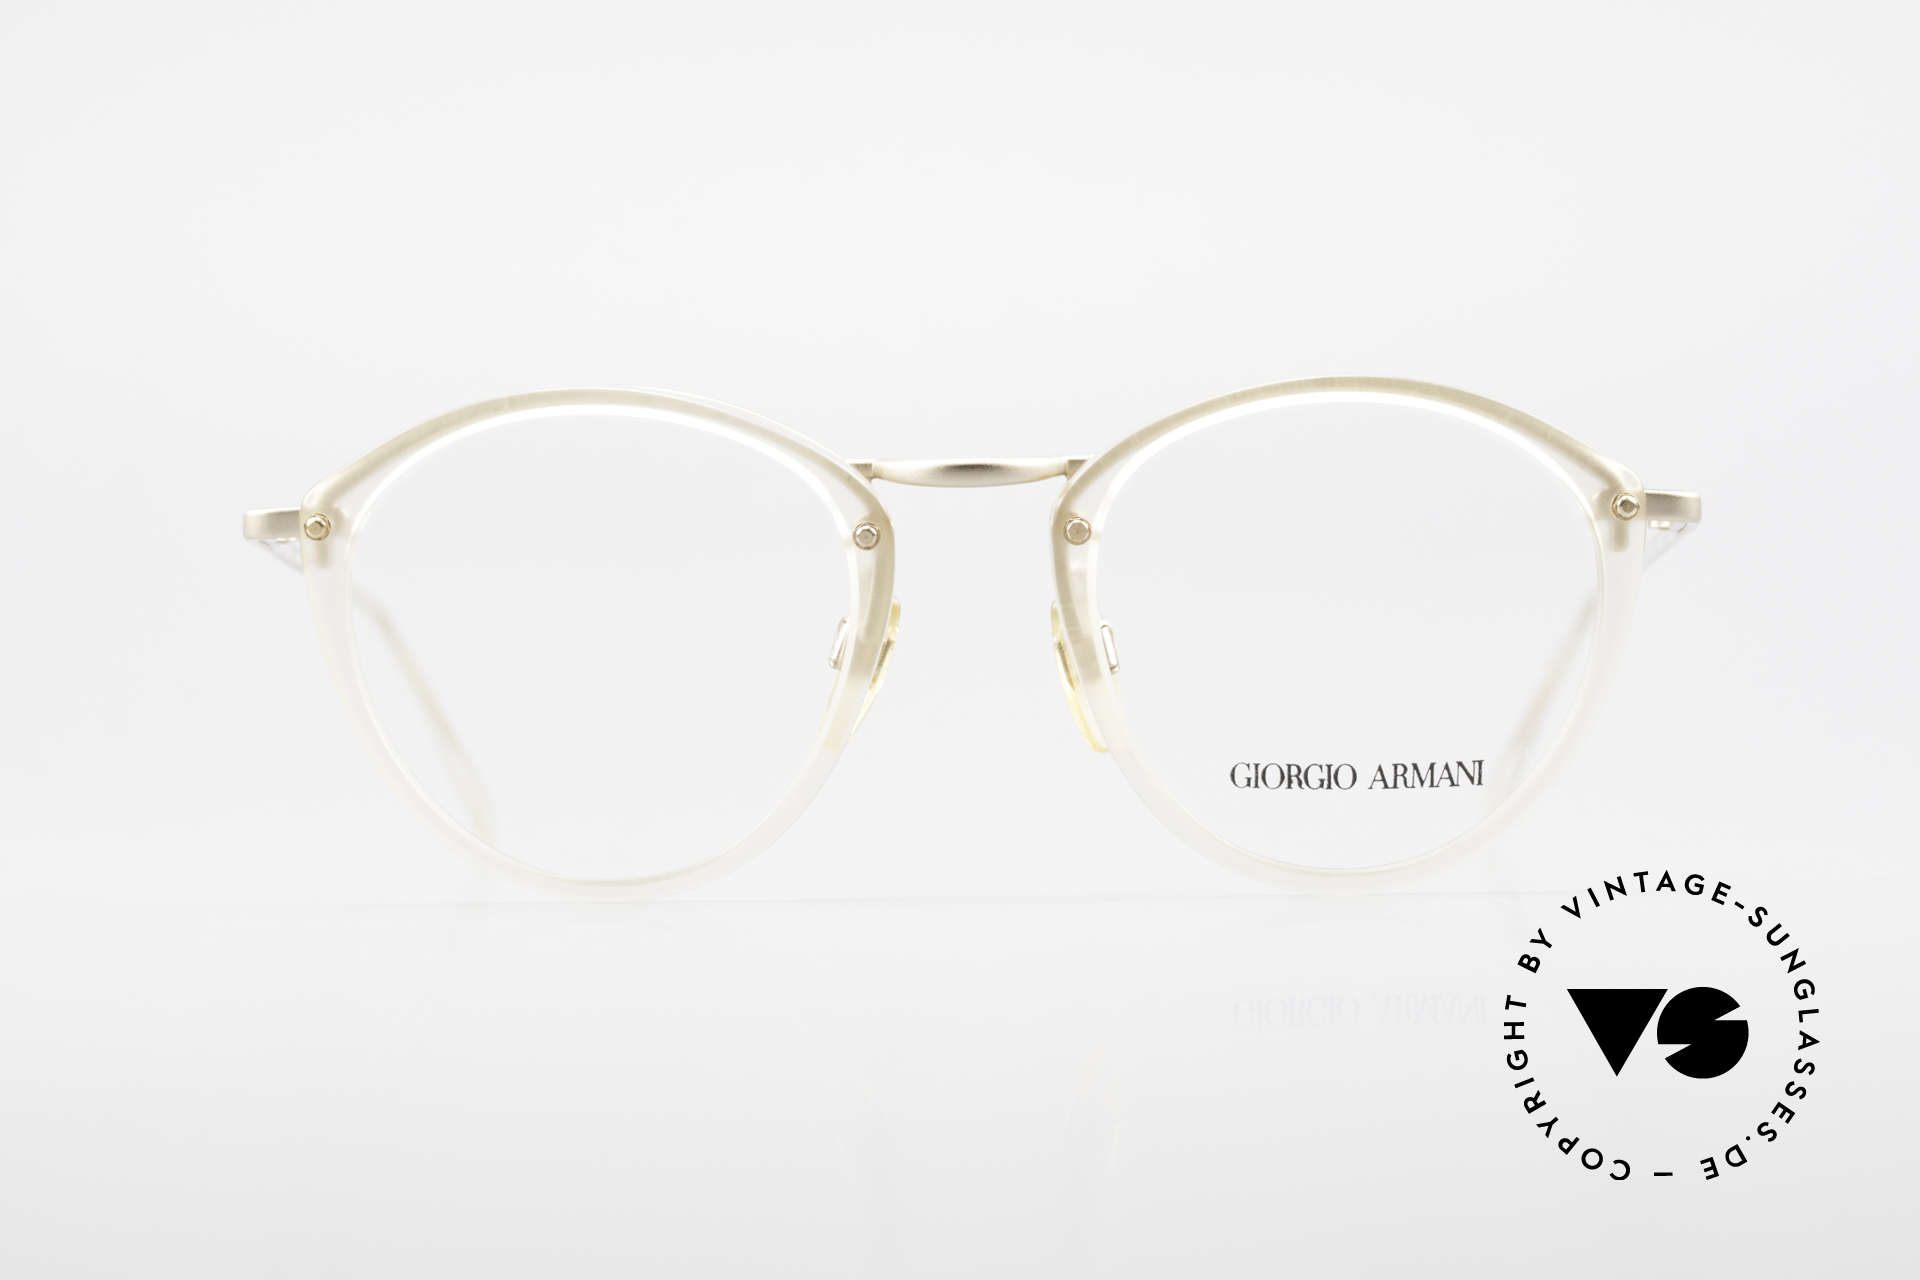 Giorgio Armani 354 80s Designer Glasses Vintage, timeless elegant combination of colors and materials, Made for Men and Women